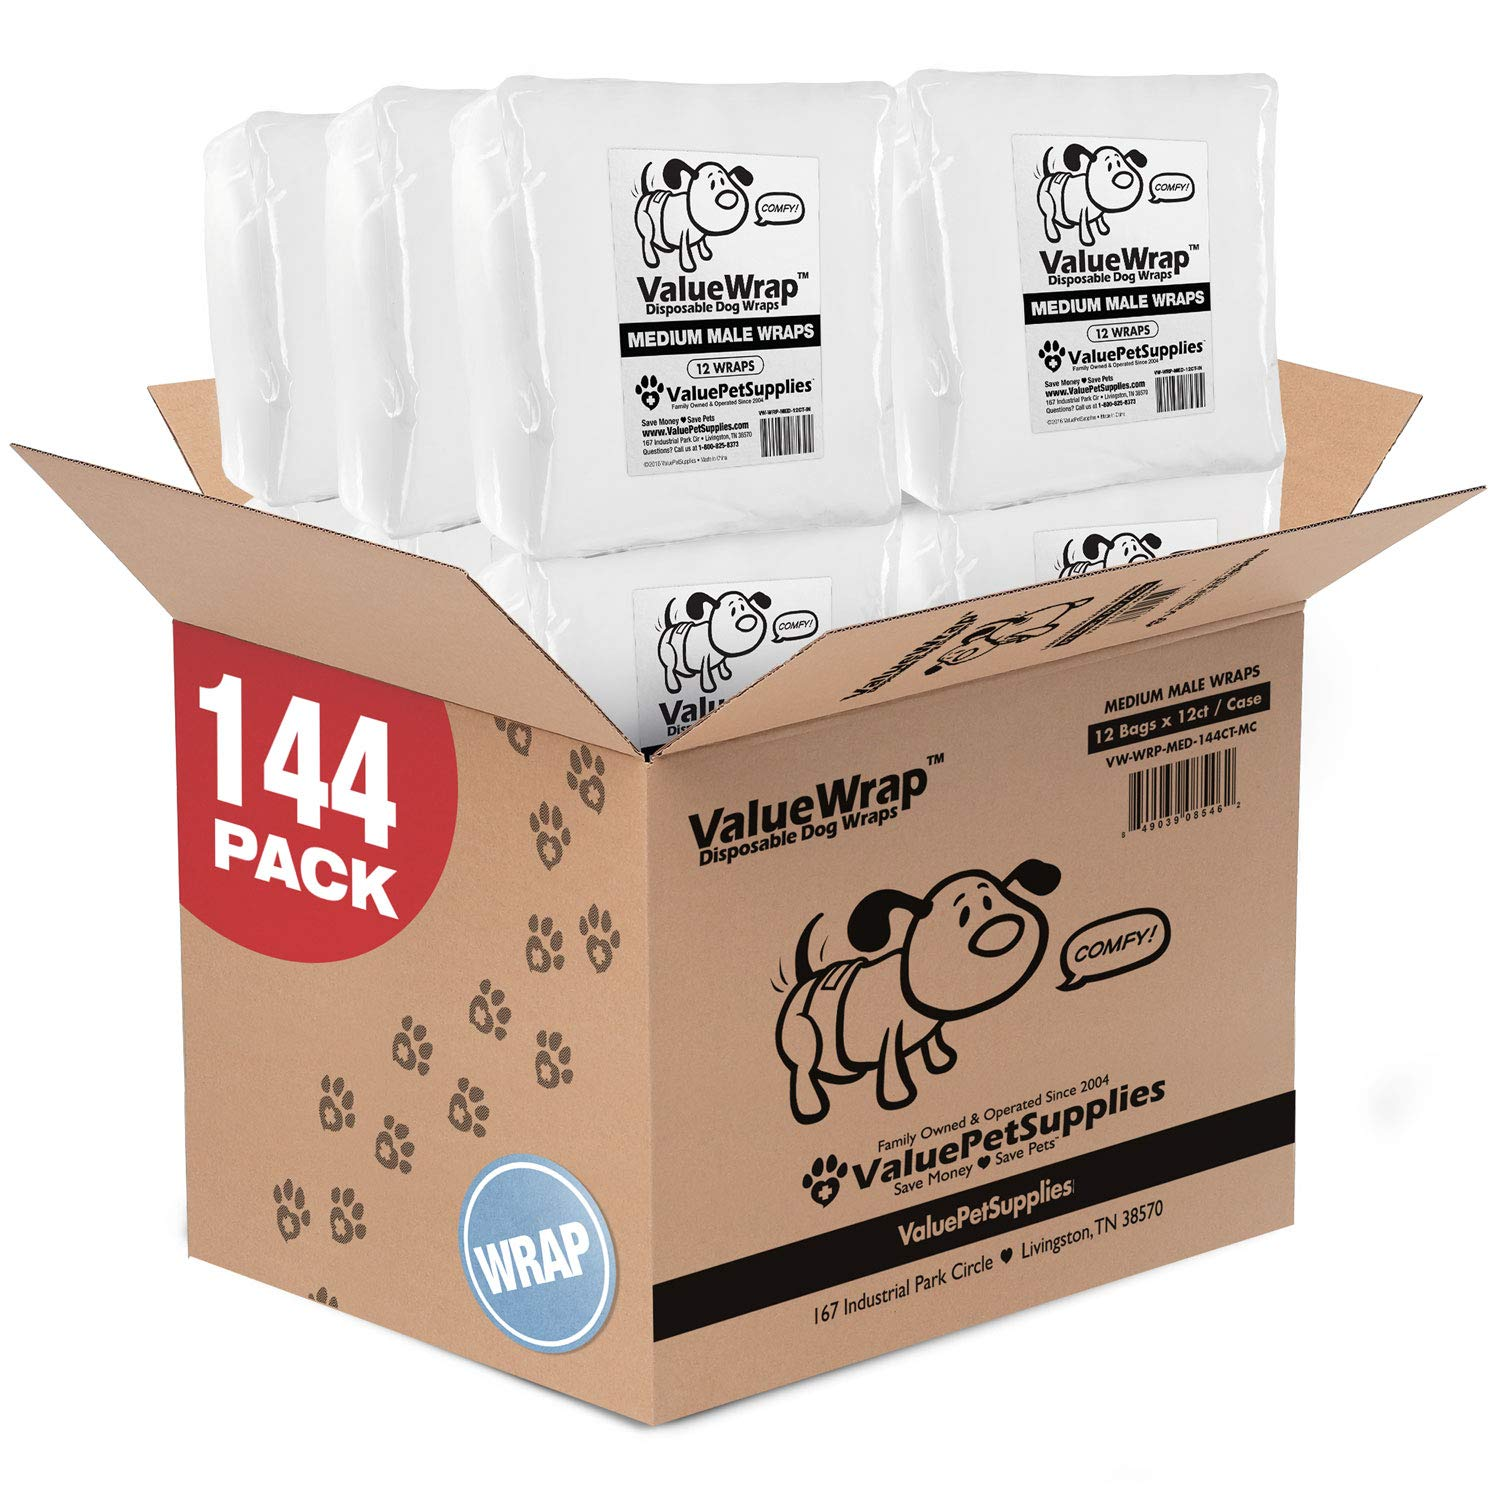 ValueWrap Disposable Male Dog Diapers, 2-Tab Medium, 144 Count - Absorbent Male Wraps for Incontinence, Excitable Urination & Travel | Fur-Friendly Fasteners | Leak Protection | Wetness Indicator by ValueWrap